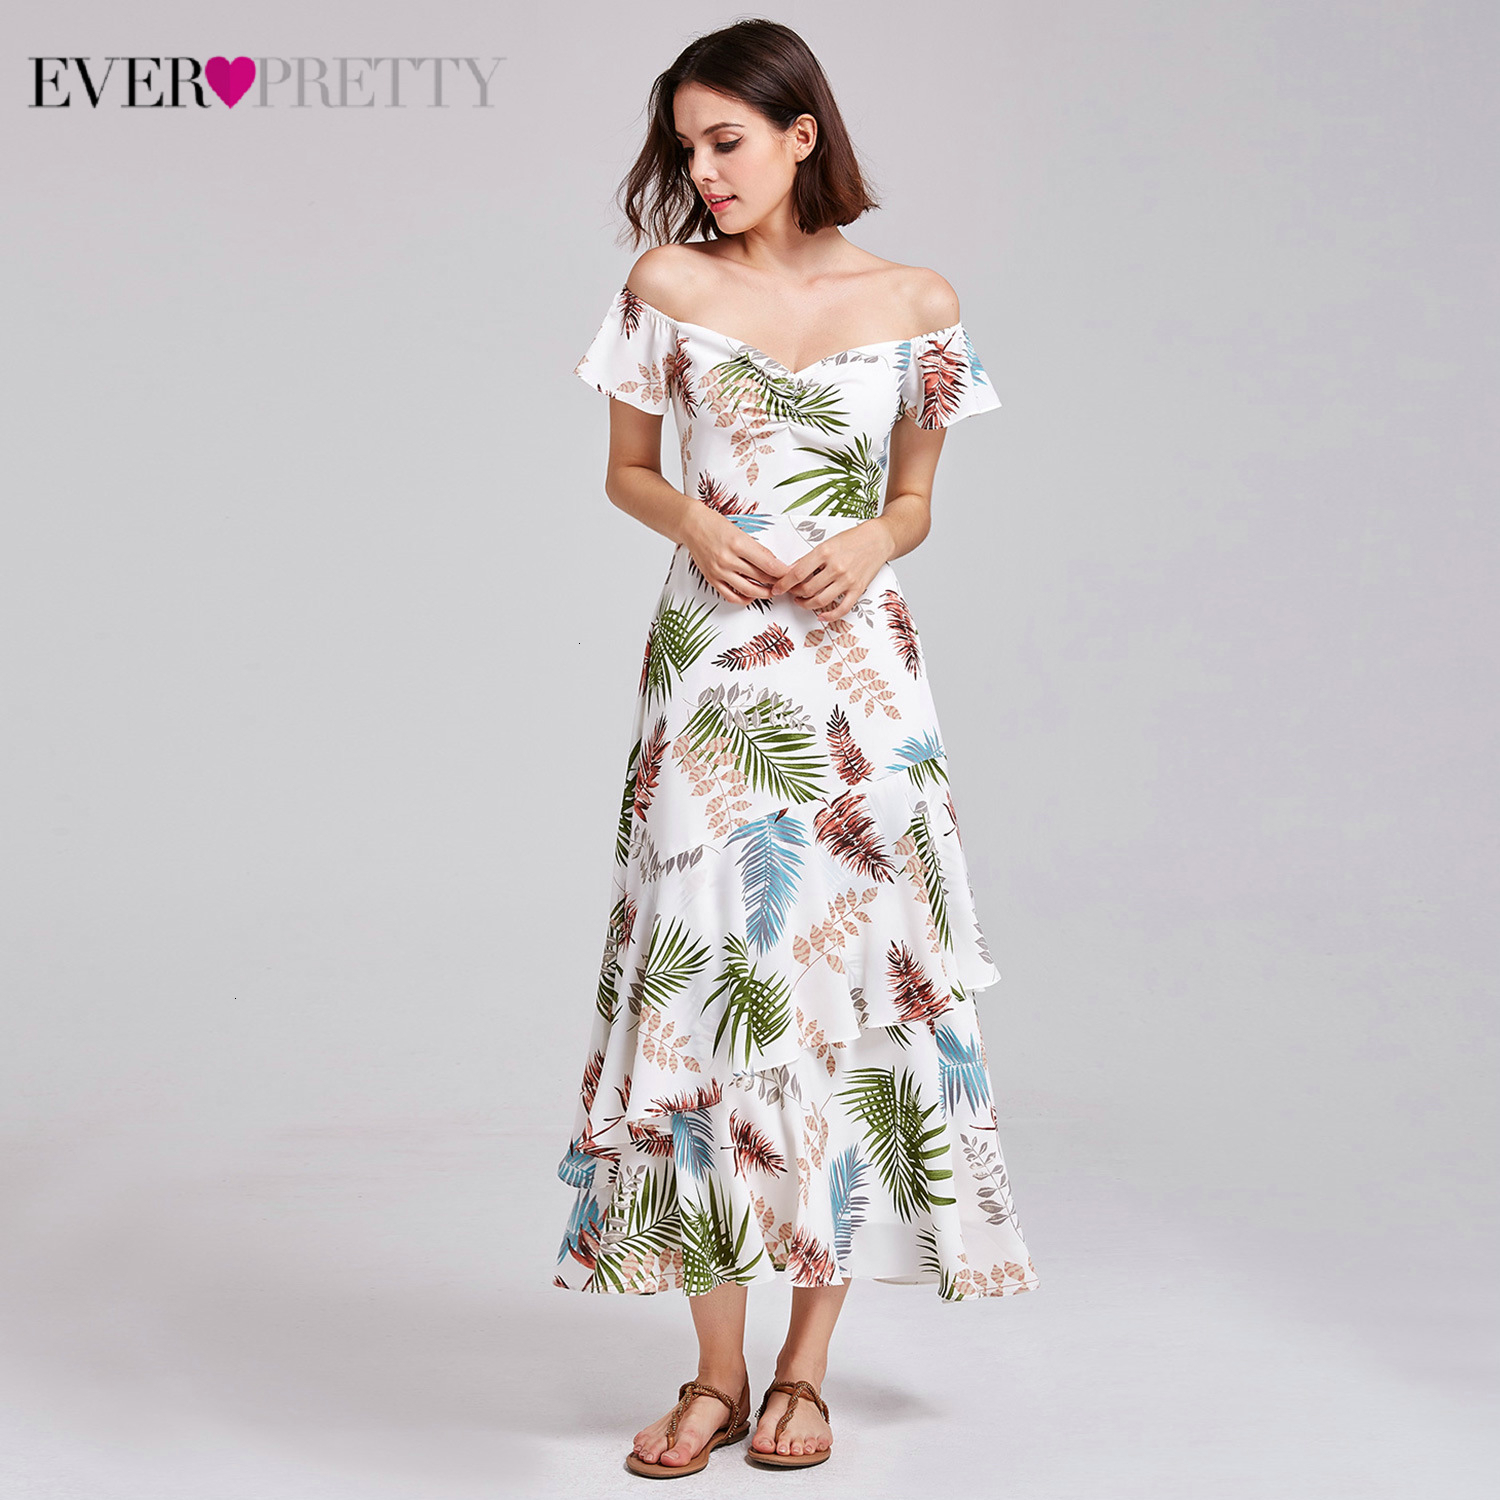 Sexy Floral Printed Cocktail Dresses Ever Pretty A-Line V-Neck Off The Shoulder Elegant Evening Party Gowns Vestidos De Festa